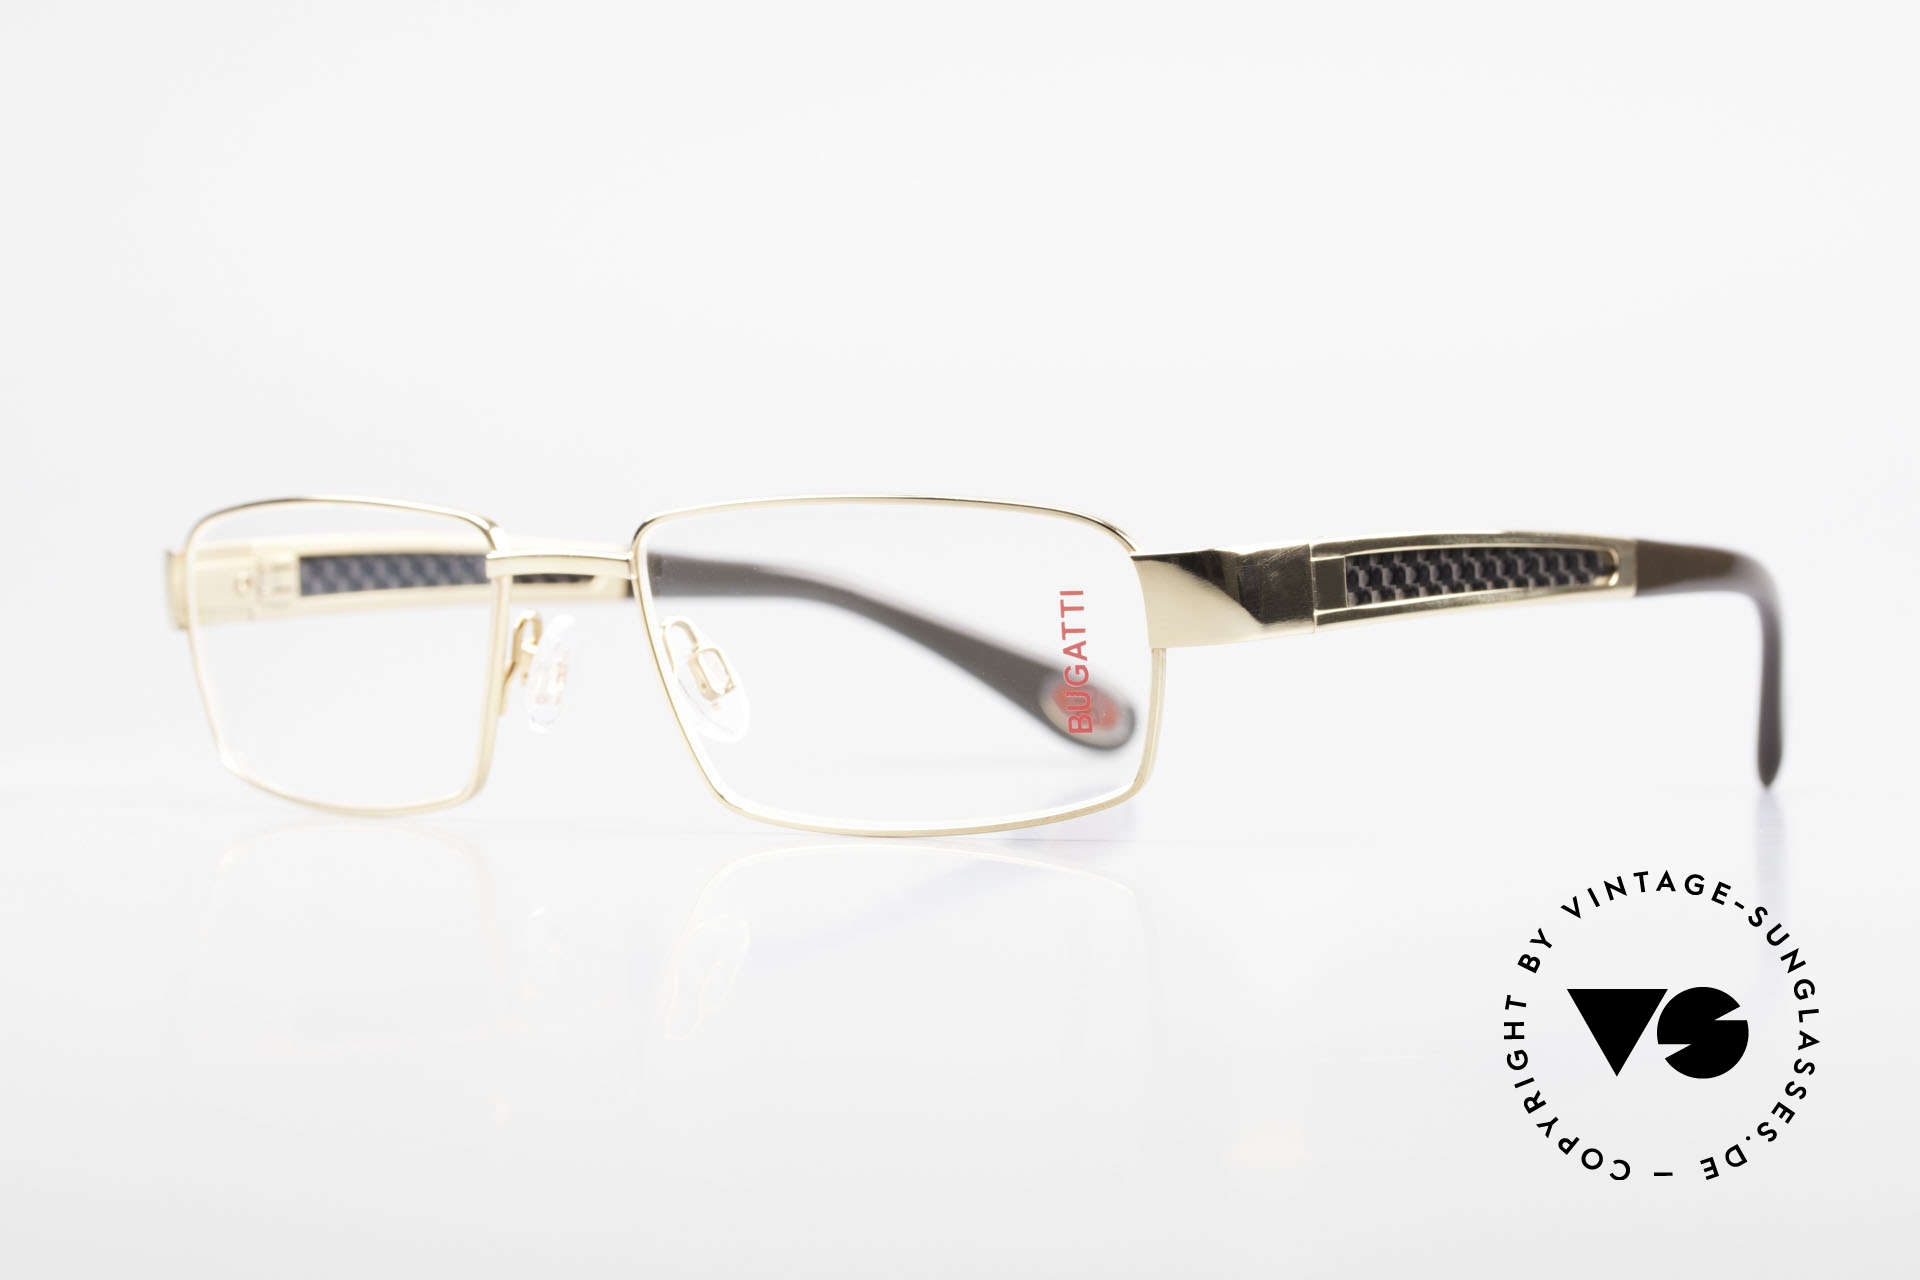 Bugatti 525 Titanium Frame Carbon Gold, CARBON temple inlays (lightweight and very sturdy), Made for Men